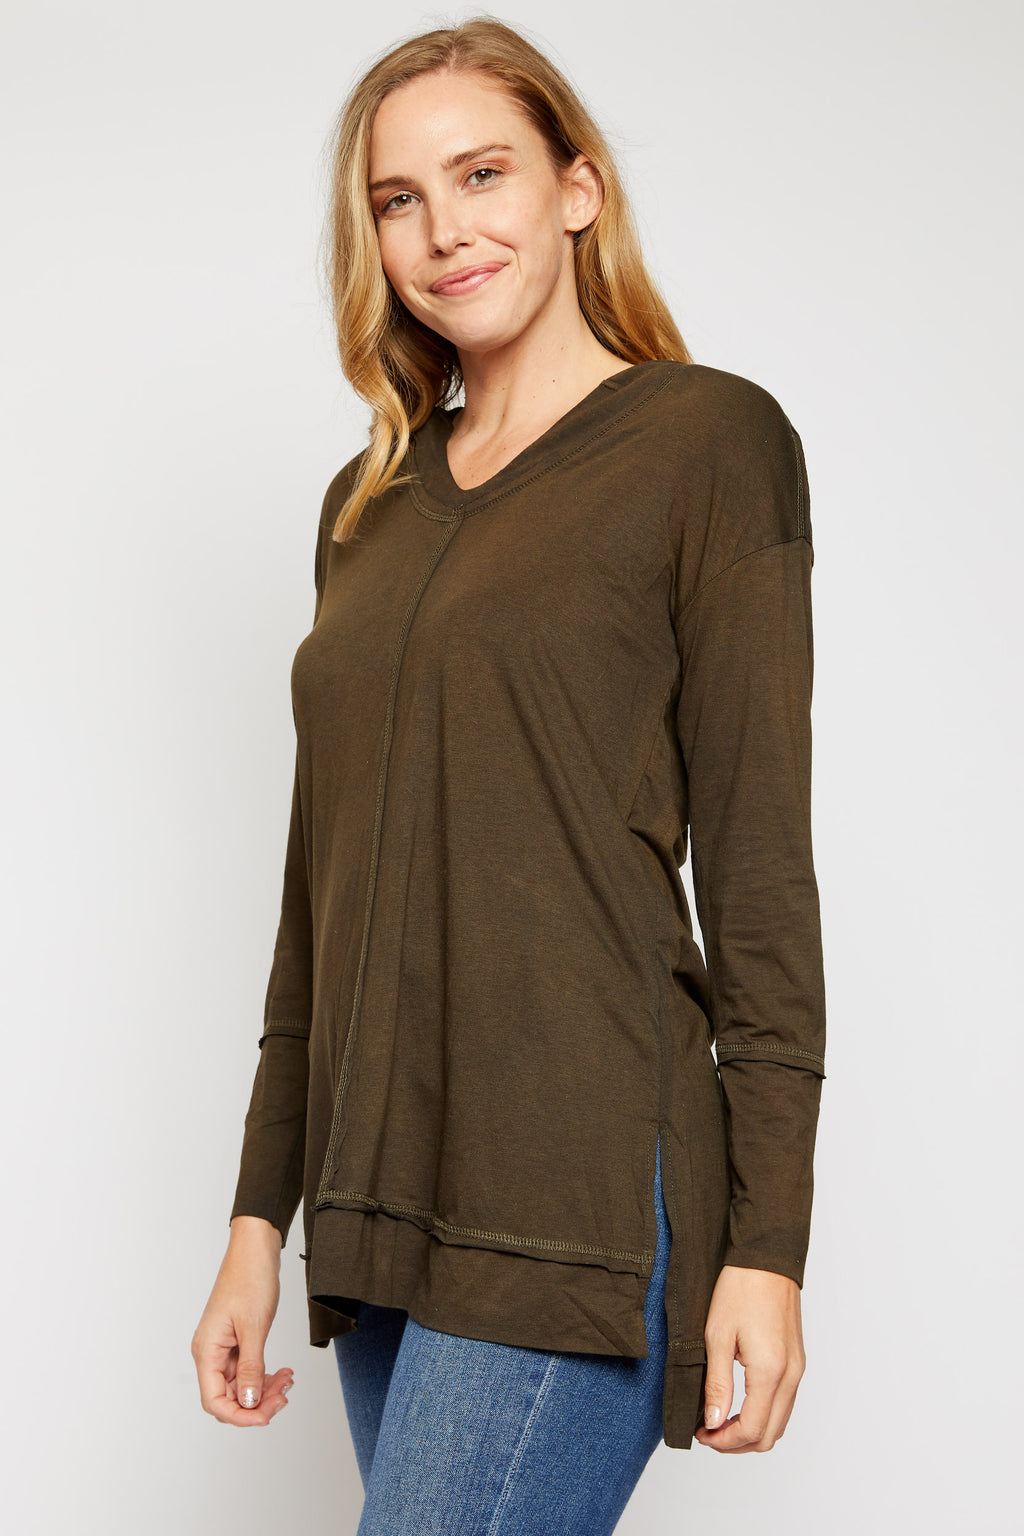 Long Sleeve Hooded Tunic Top - Jacqueline B Clothing